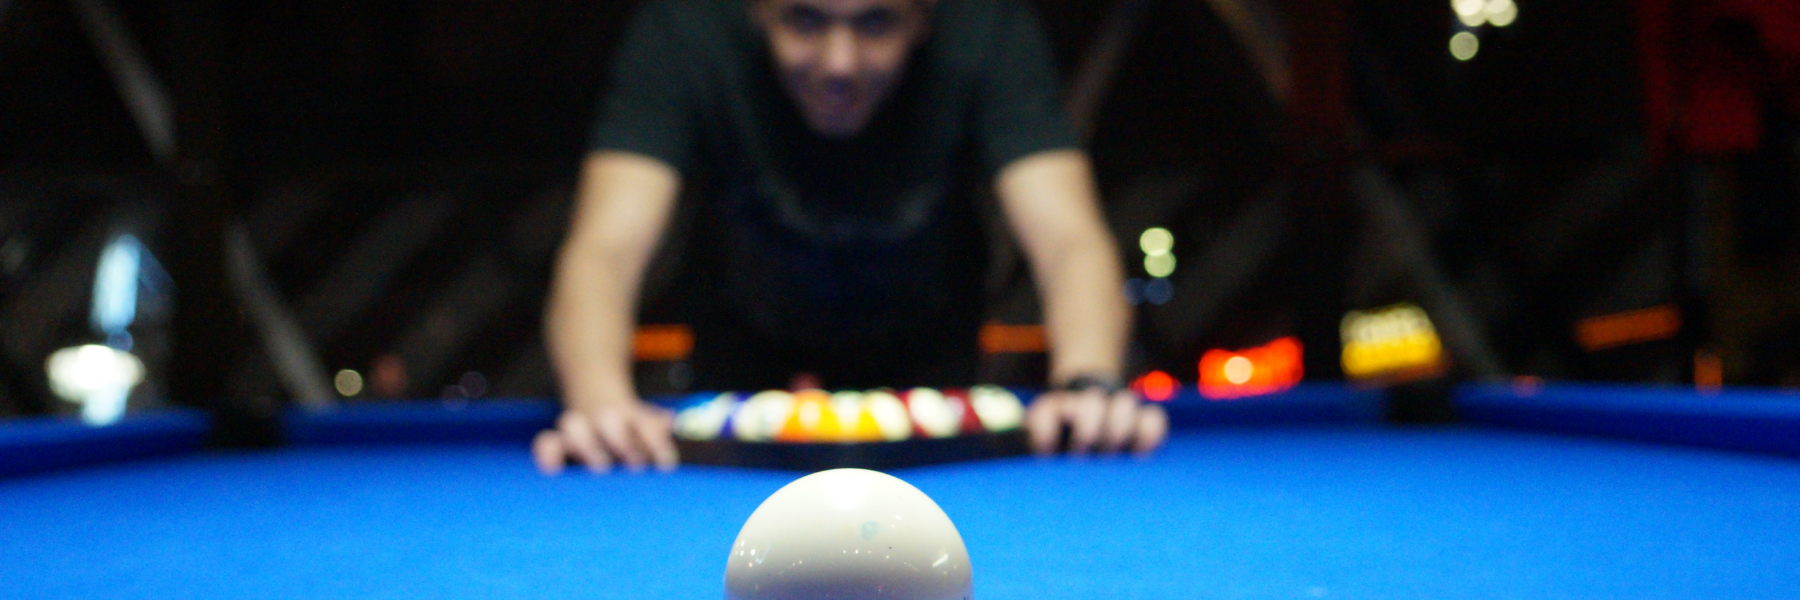 Things to Know Before Buying a Pool Table